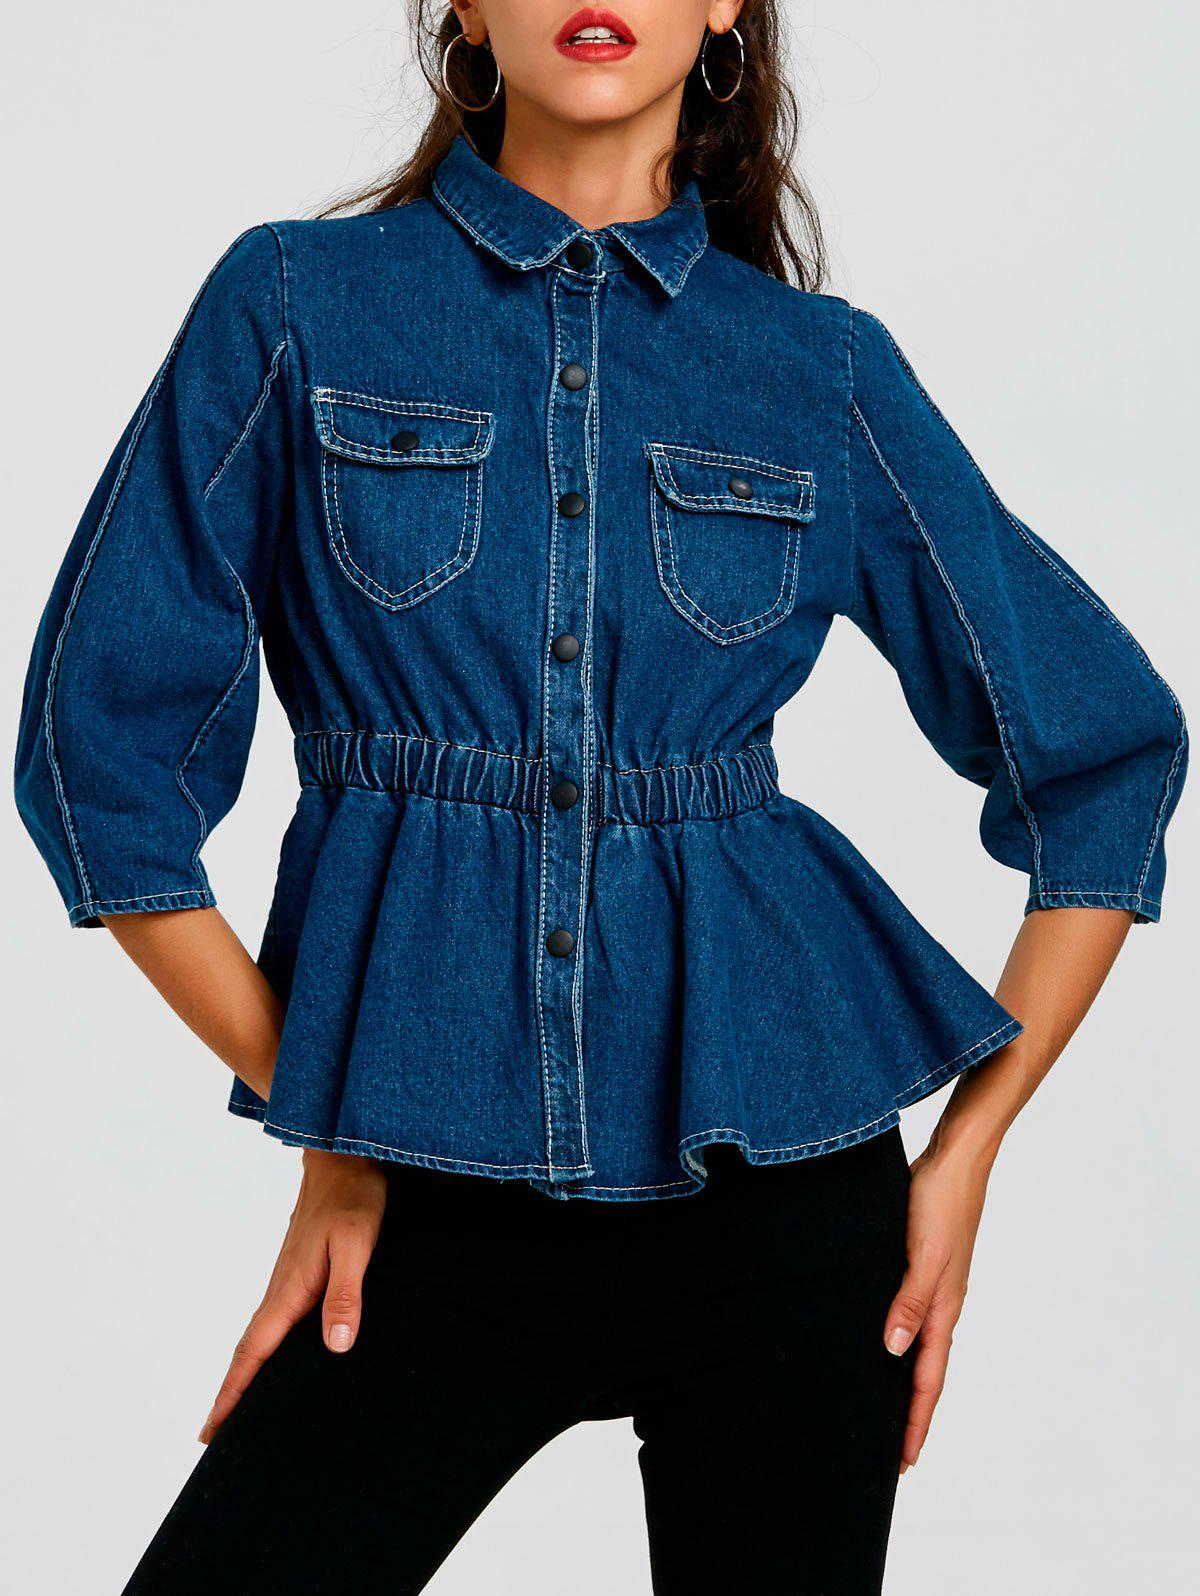 Discount High Waist Button Up Denim Jacket